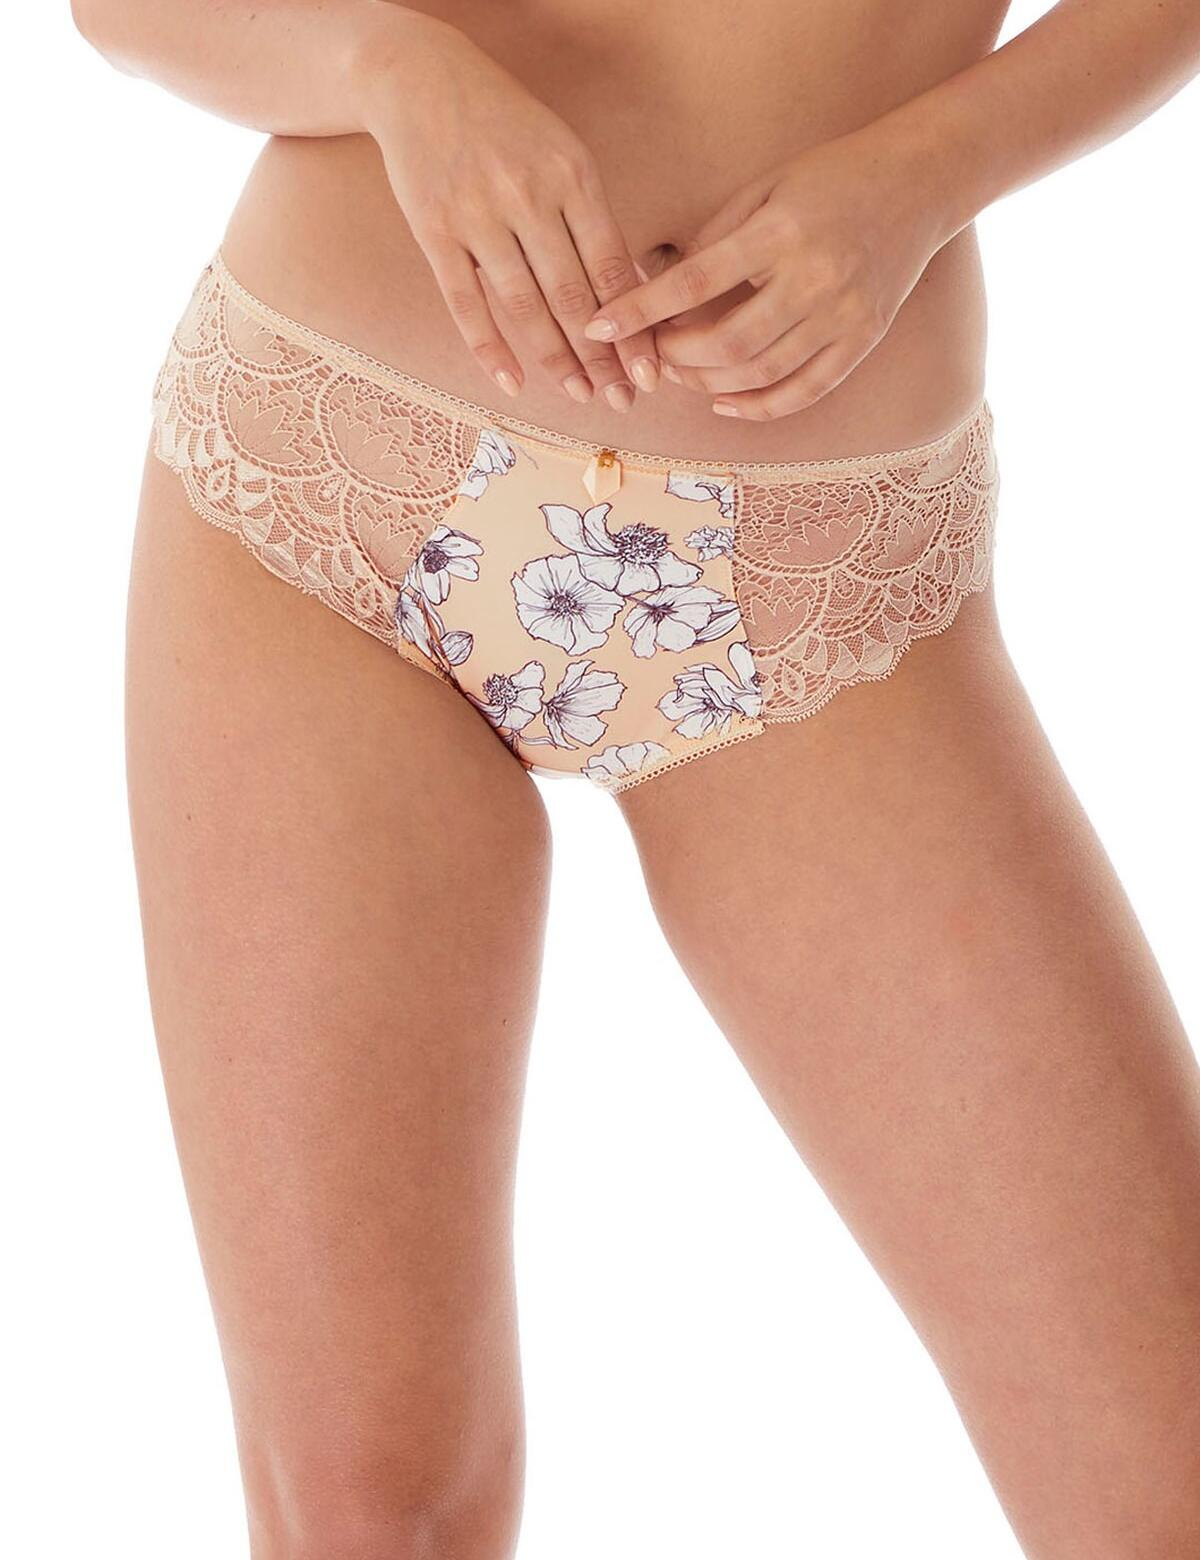 Fantasie Lingerie Olivia Brief 3185 Womens Lace Knickers Natural Beige - Natural Beige